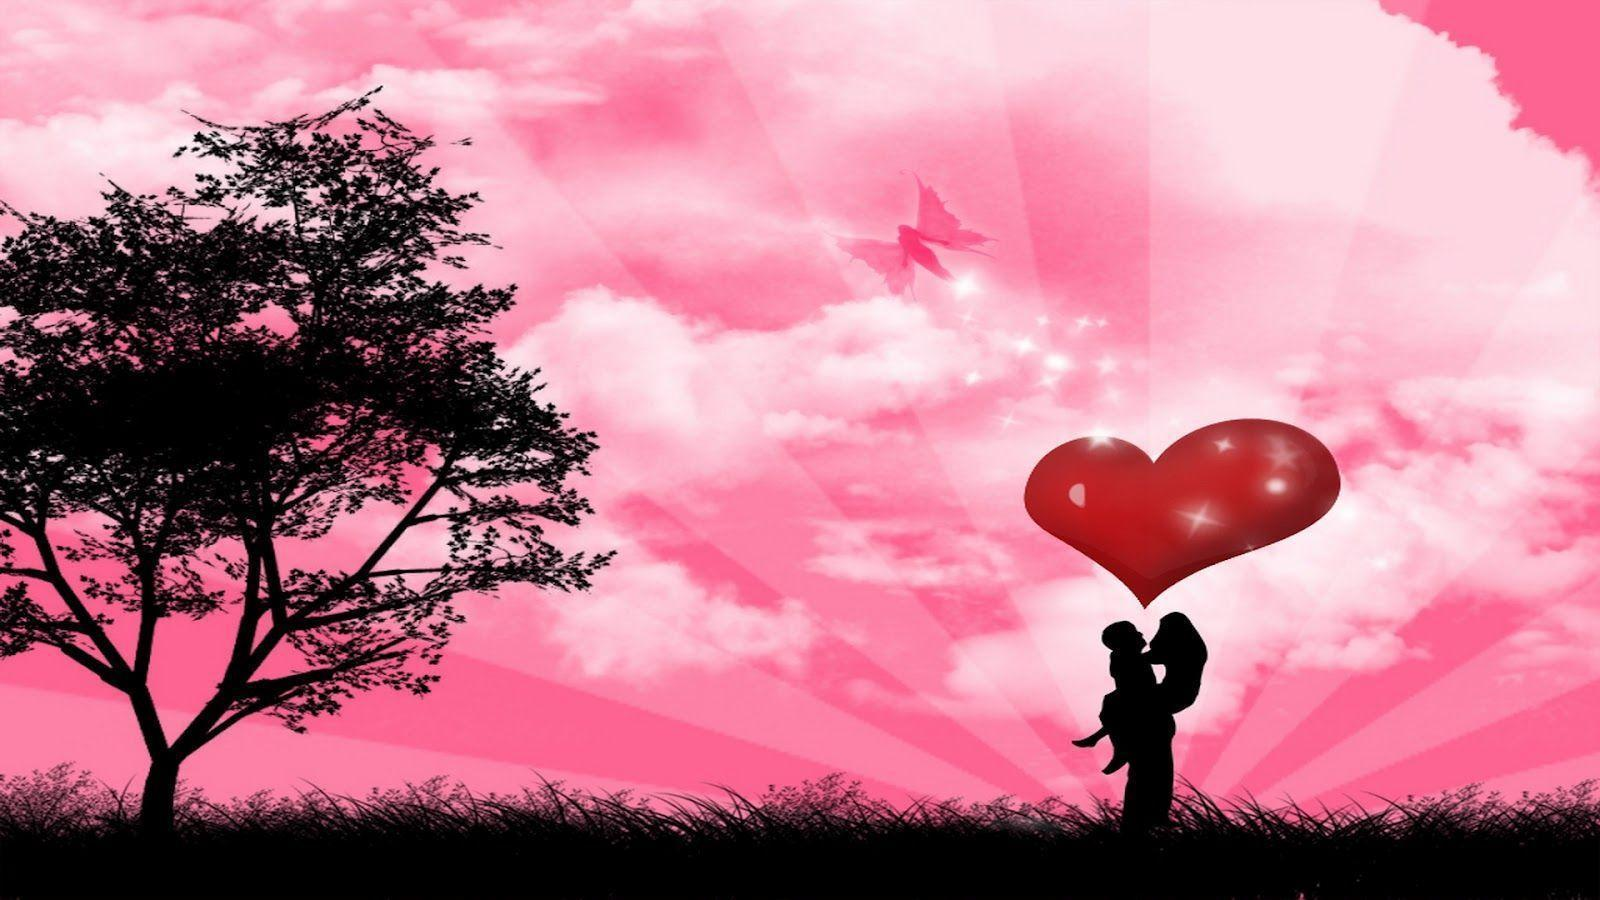 Romantic Baby Love Wallpaper : Love Romantic Wallpapers - Wallpaper cave